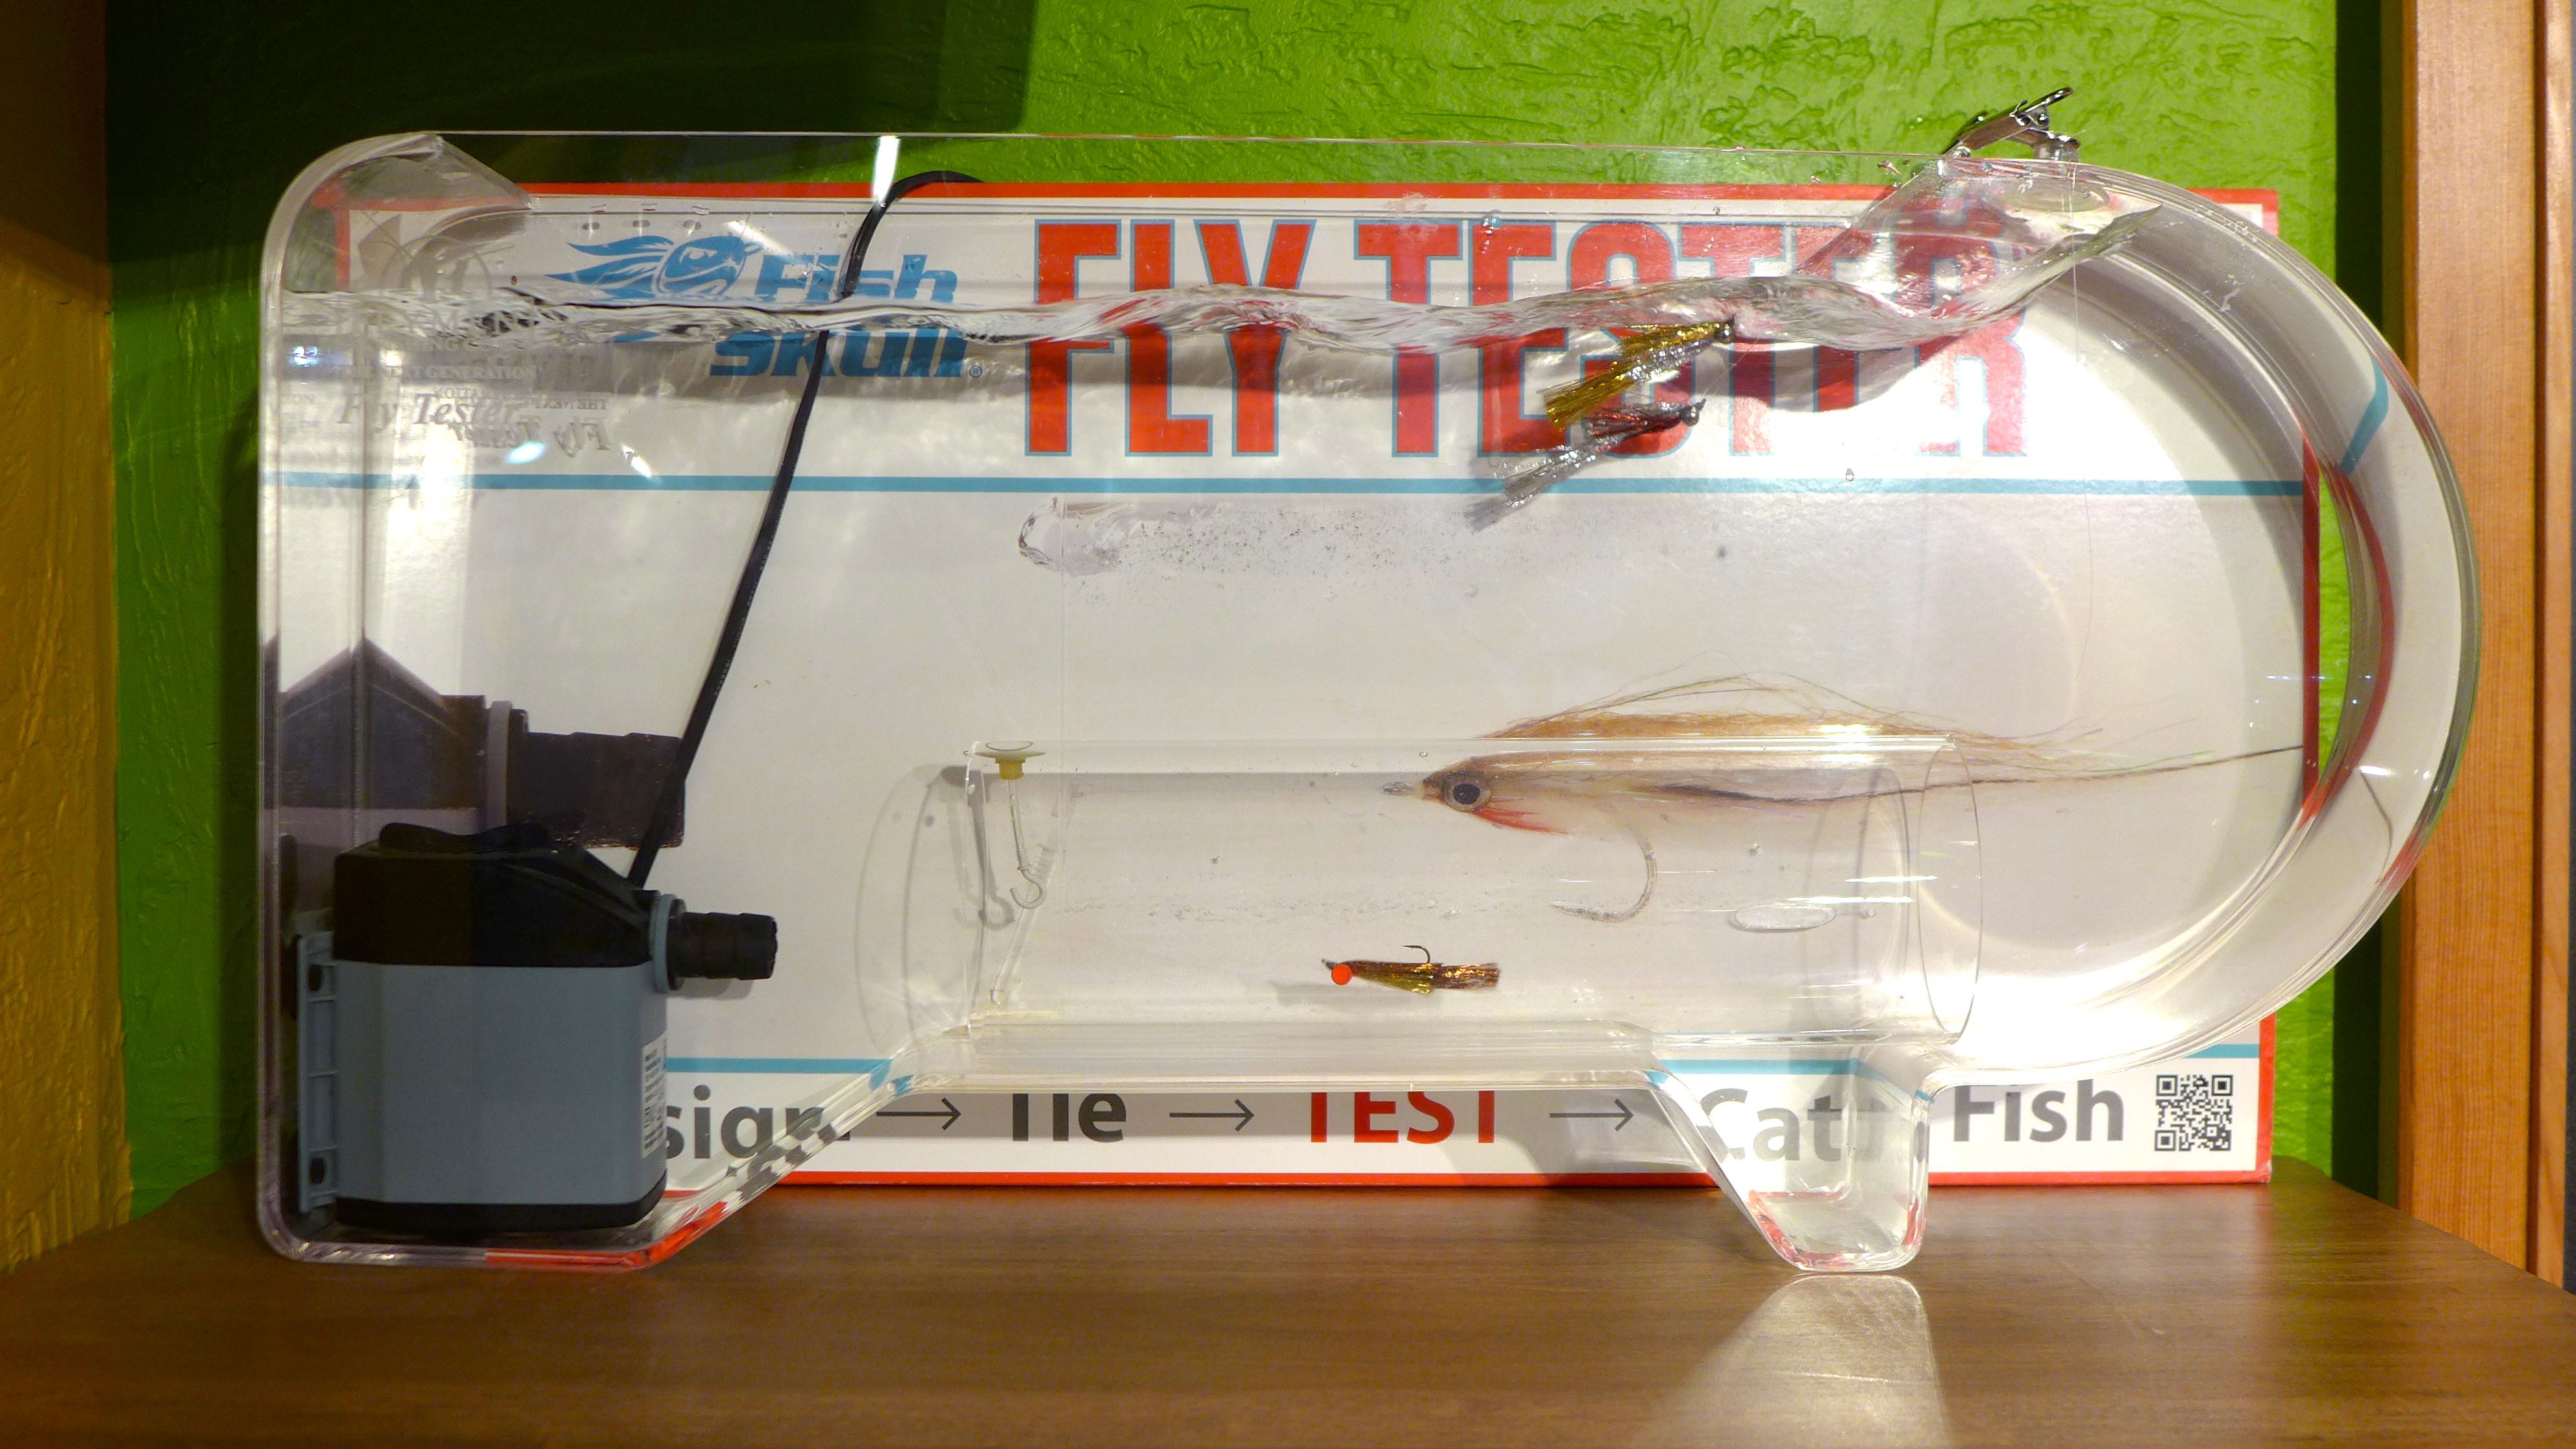 Fly Tester by Flymen Fishing Co. - Headhunters Fly Shop